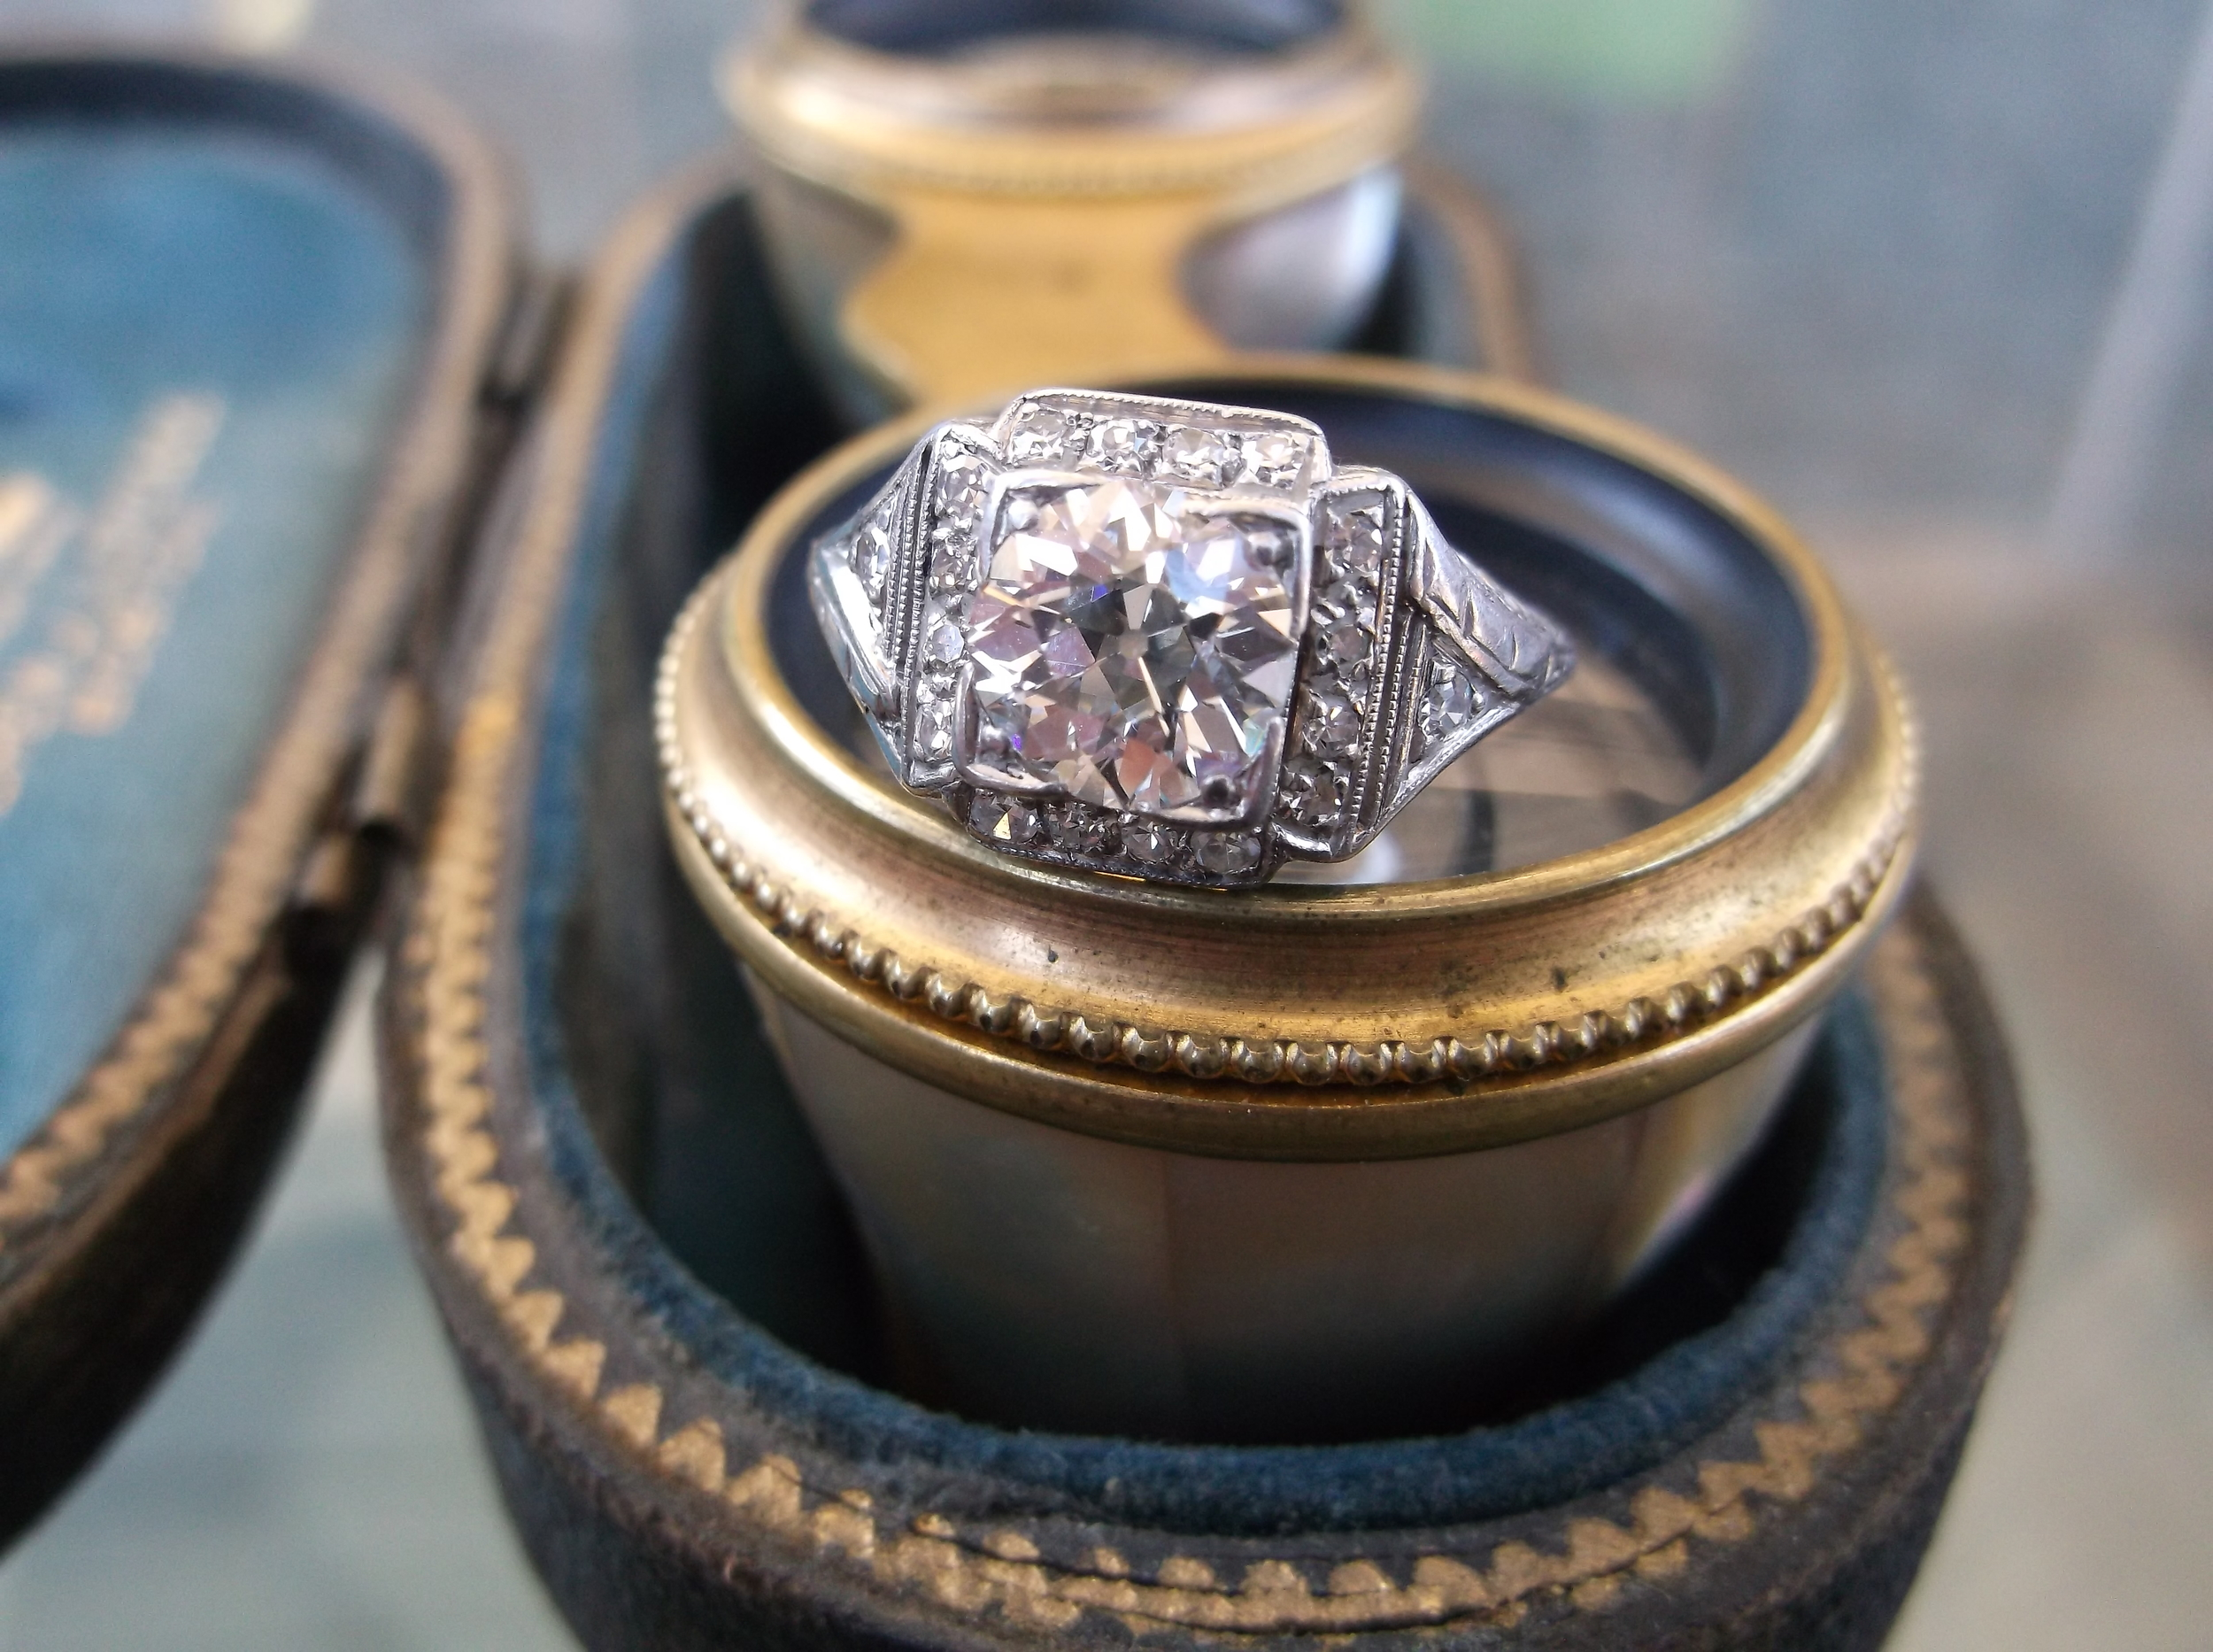 SOLD - Extraordinary 1920's 1.25 carat Old European cut diamond ring set in a platinum and diamond detail mounting.